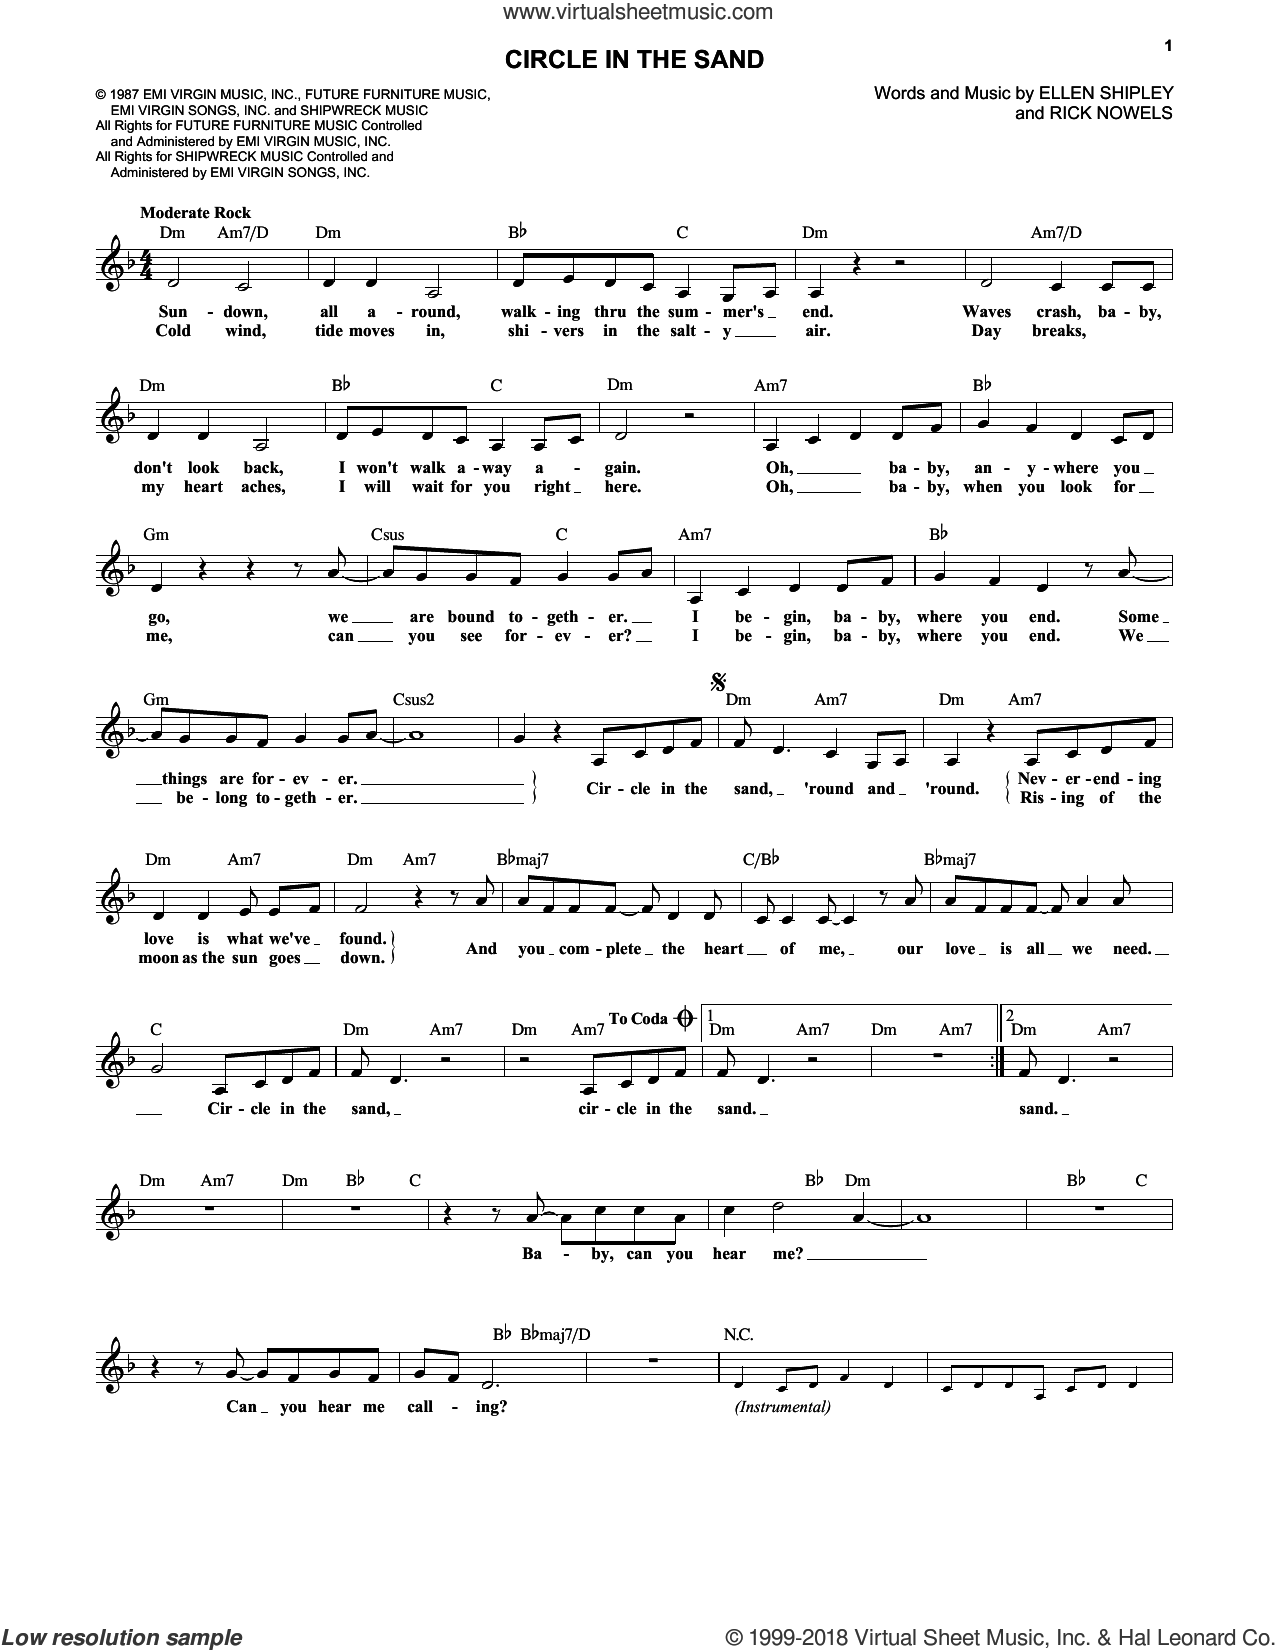 Circle In The Sand sheet music for voice and other instruments (fake book) by Belinda Carlisle, Ellen Shipley and Rick Nowels, intermediate skill level